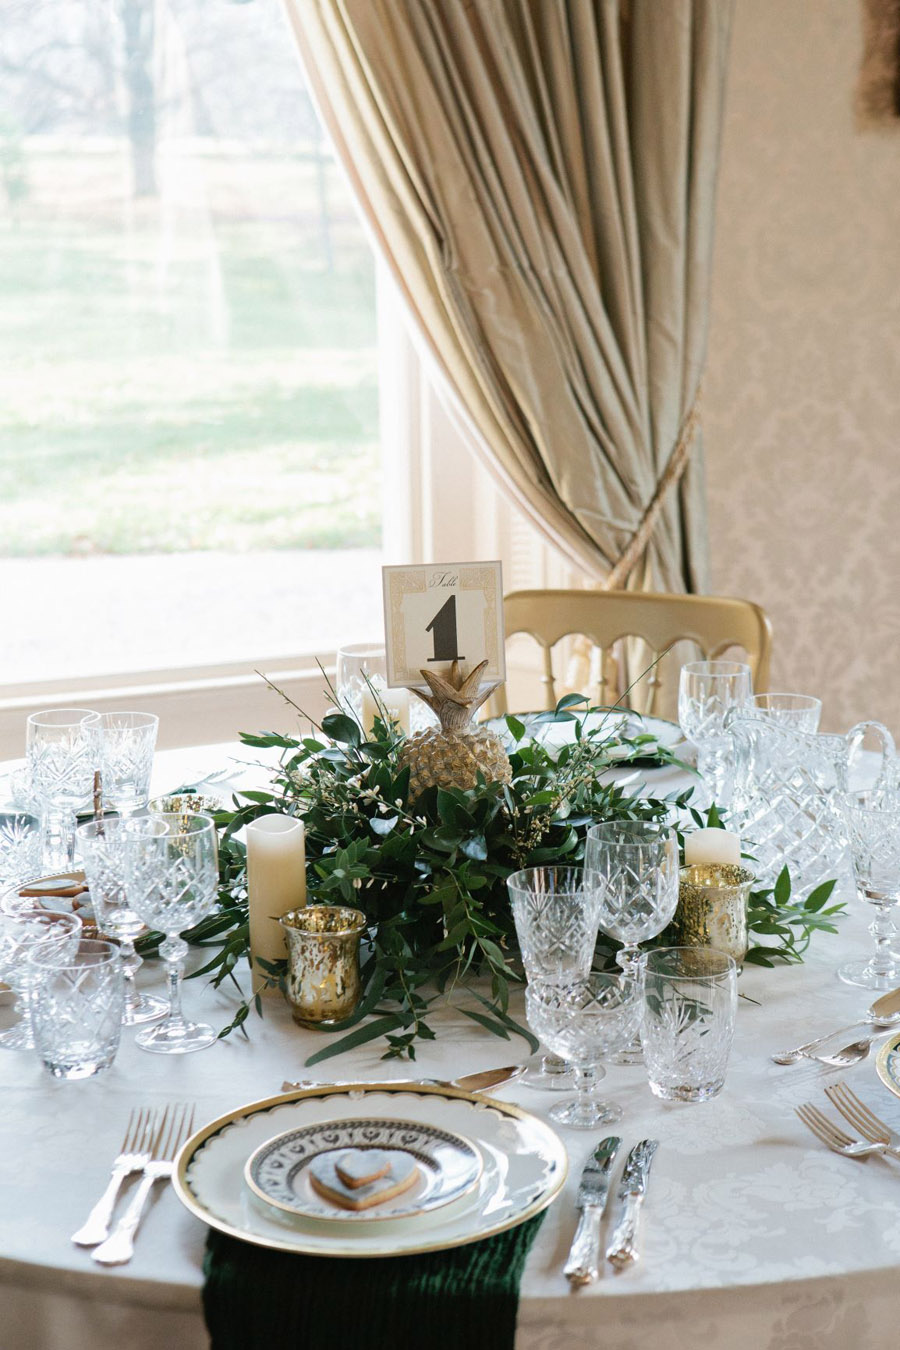 Mount Ephraim wedding style ideas on English-Wedding.com Photo credit Matilda Delves (18)